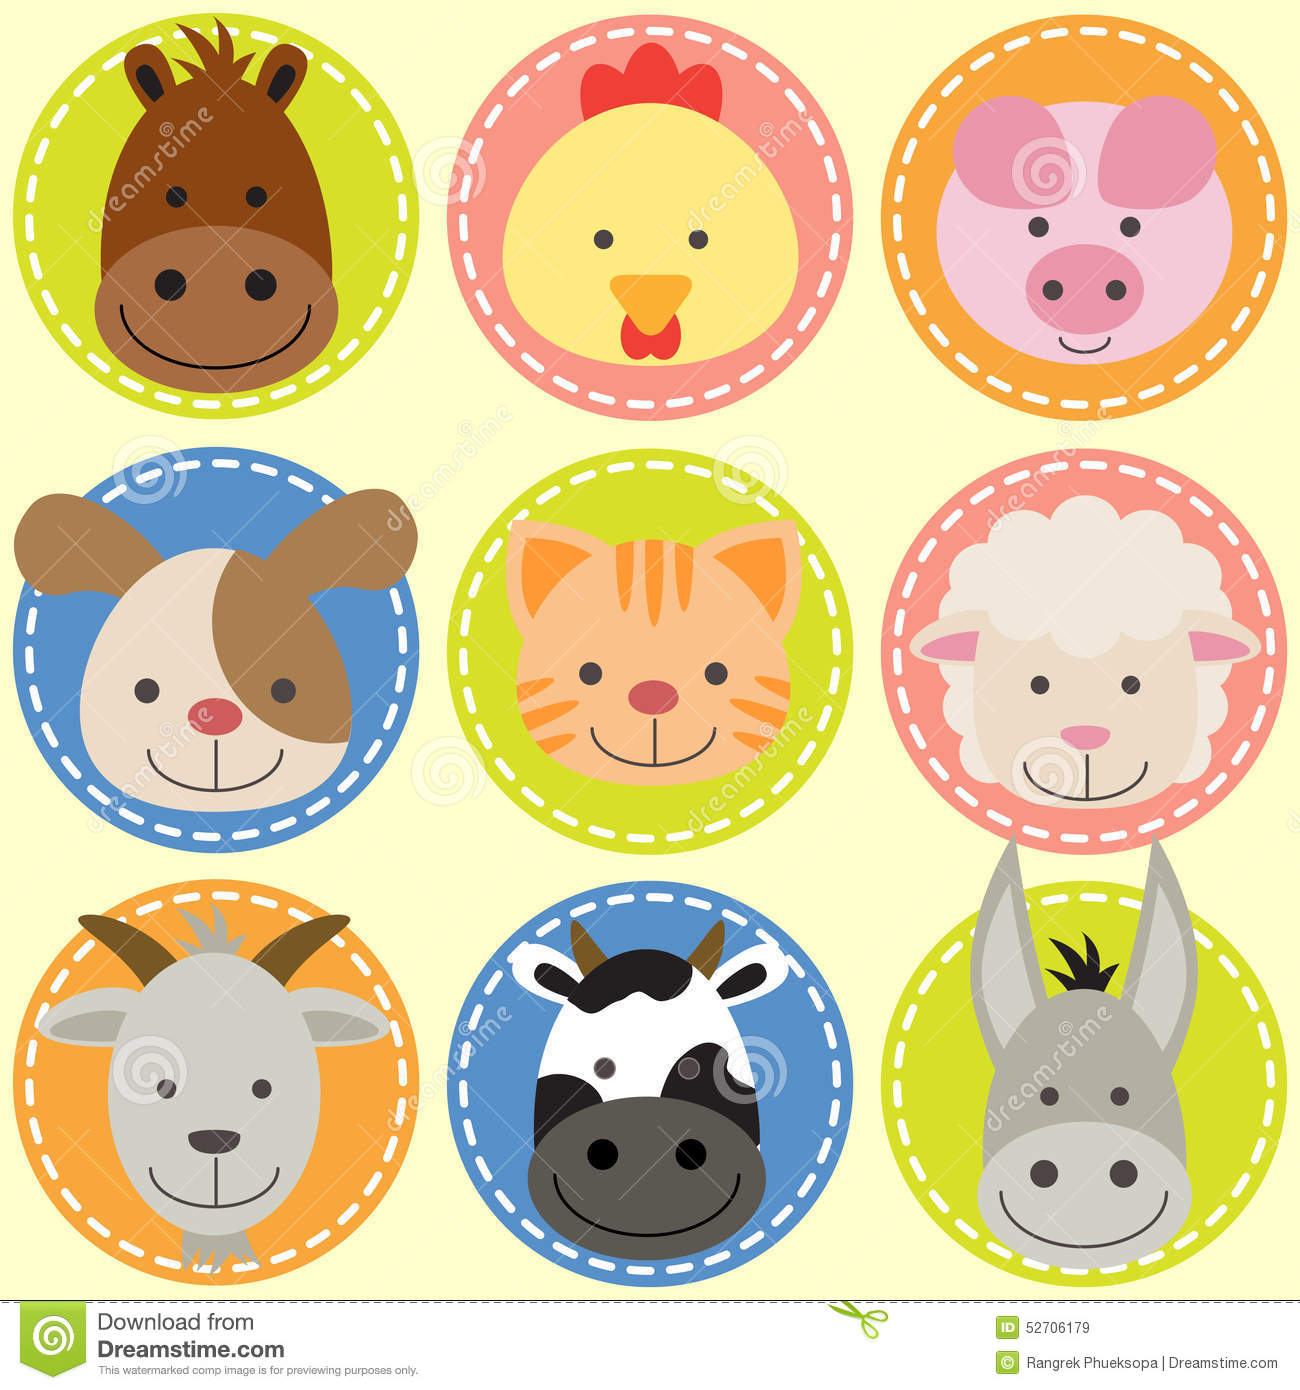 492998 likewise Free Background Checks In Pennsylvania furthermore Improvement moreover Stock Illustration Set Animal Faces Farm Animals Image52706179 also Fox. on cartoon face clip art